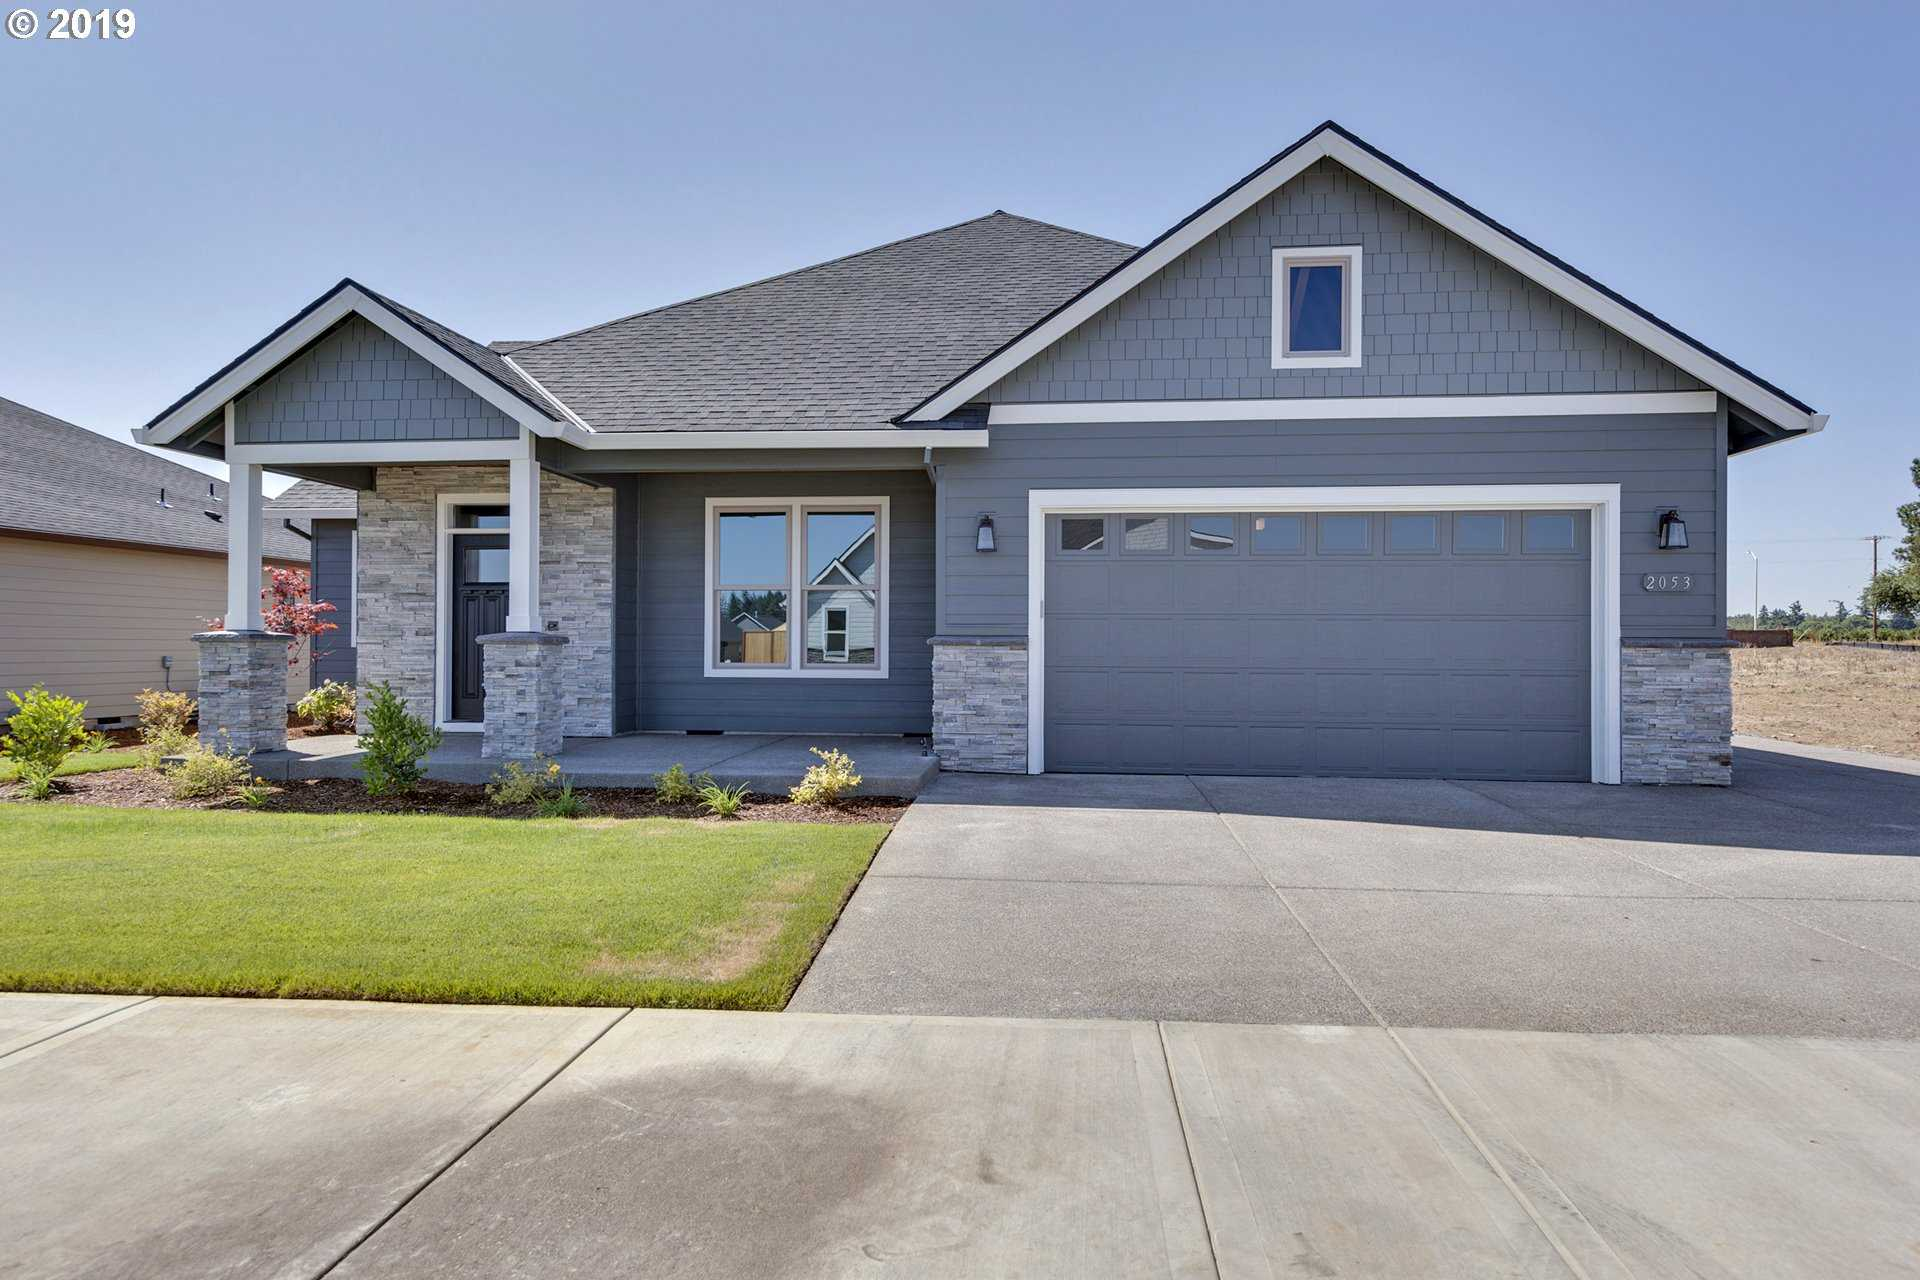 $524,950 - 3Br/2Ba -  for Sale in Canby